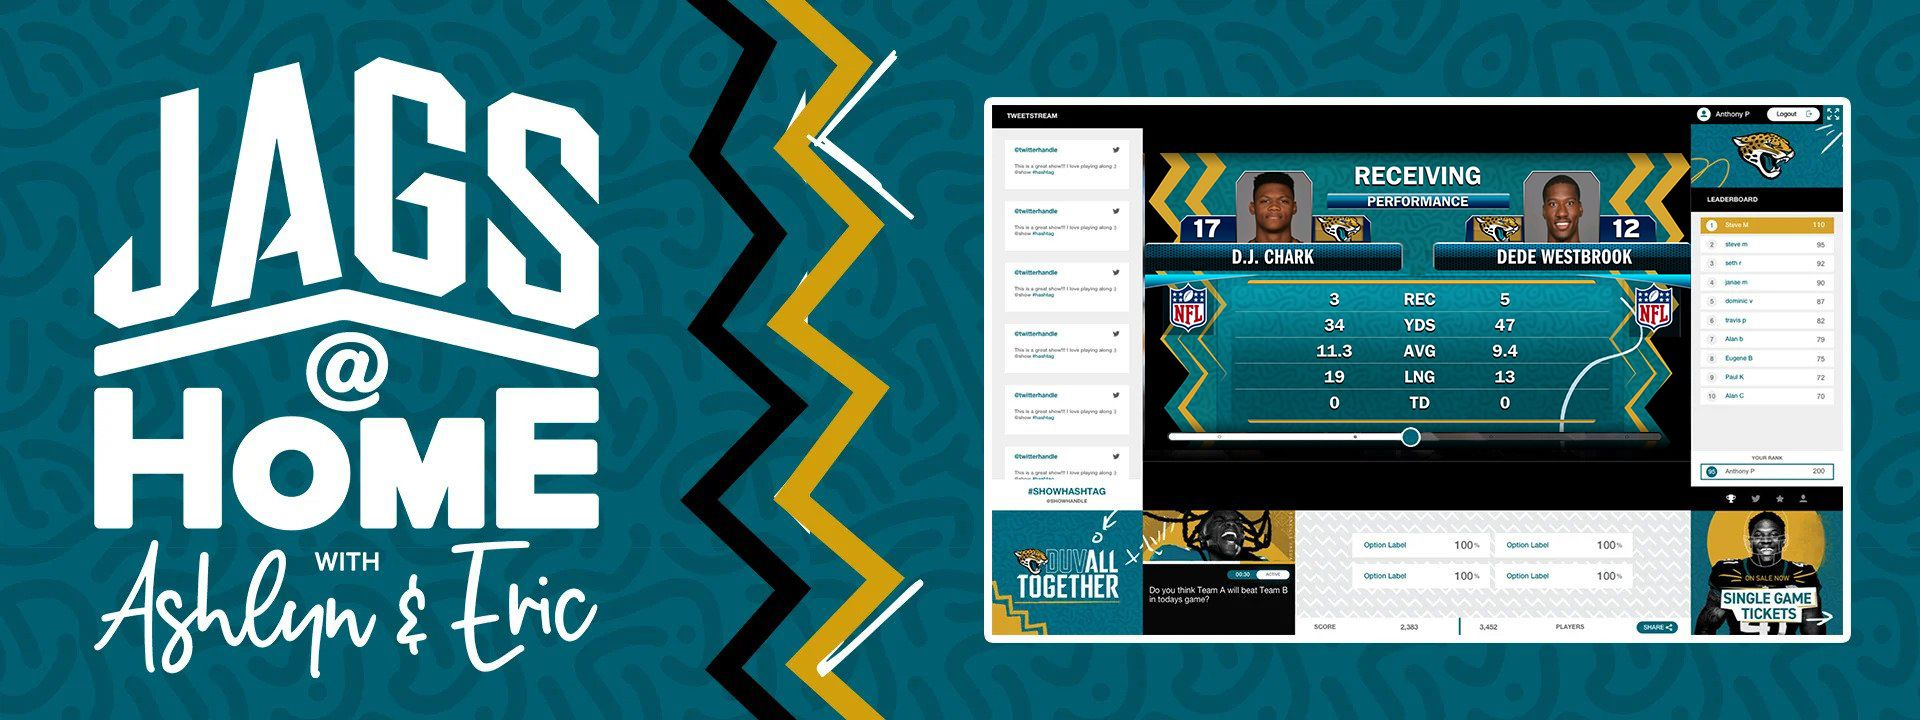 You've got 10,000 reasons to bring the Jaguars home this season.